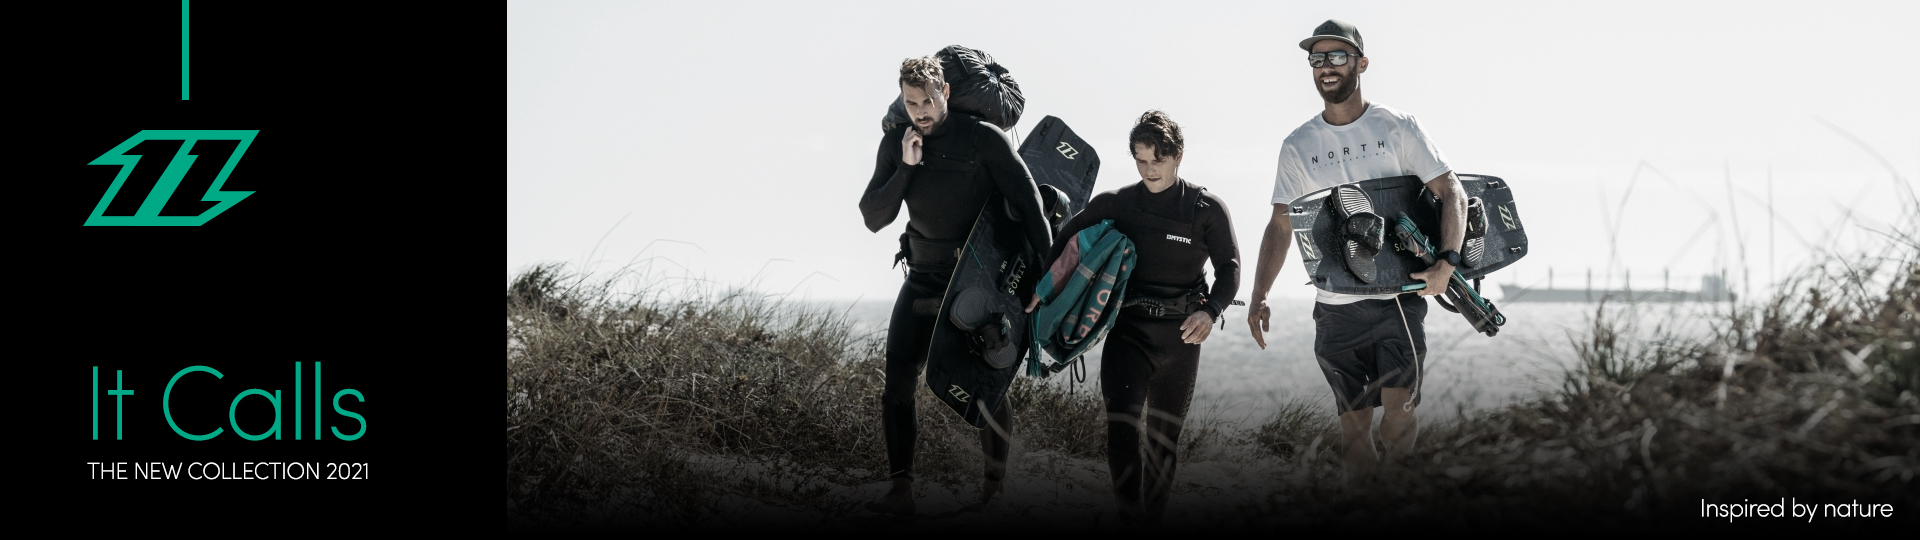 Minoia Board Co North Kiteboarding 2020